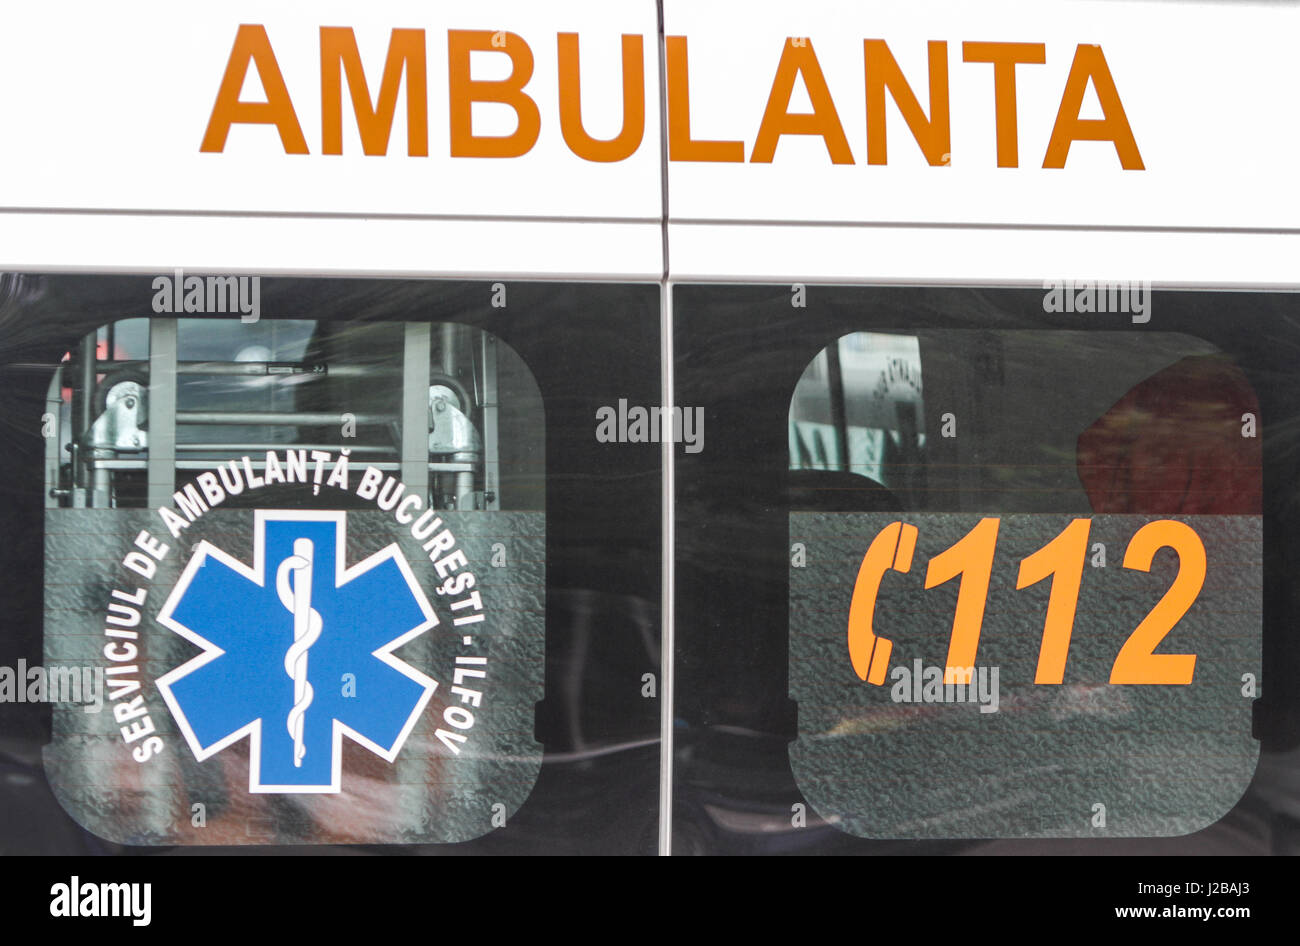 BUCHAREST, ROMANIA, June 4, 2016: Bucharest ambulance service sign and the emergency number. - Stock Image